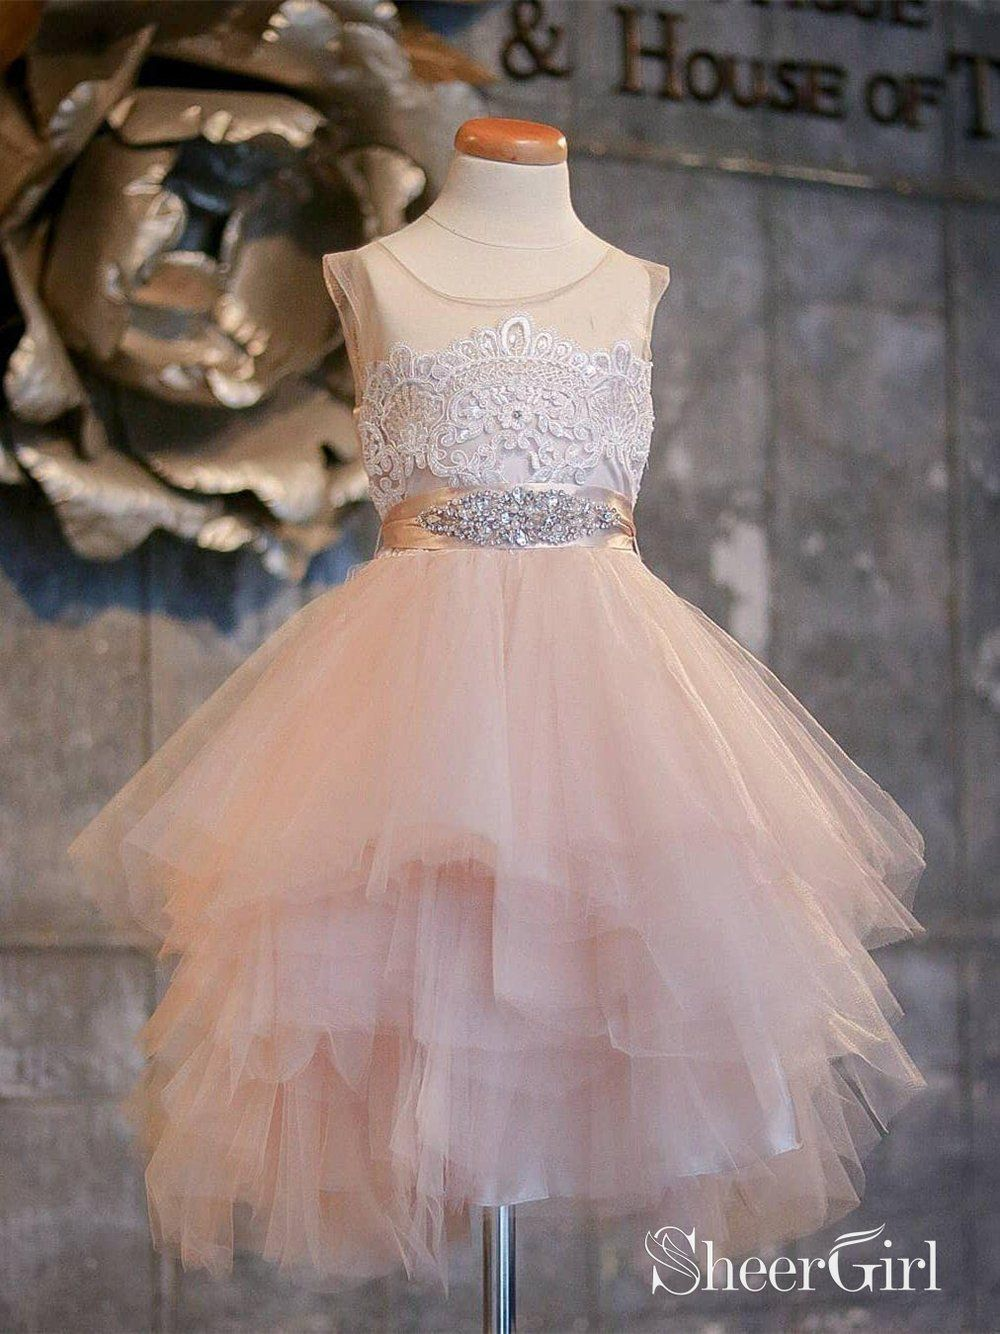 Blush pink flower girl dresses asymmetric tulle lace top cute dress